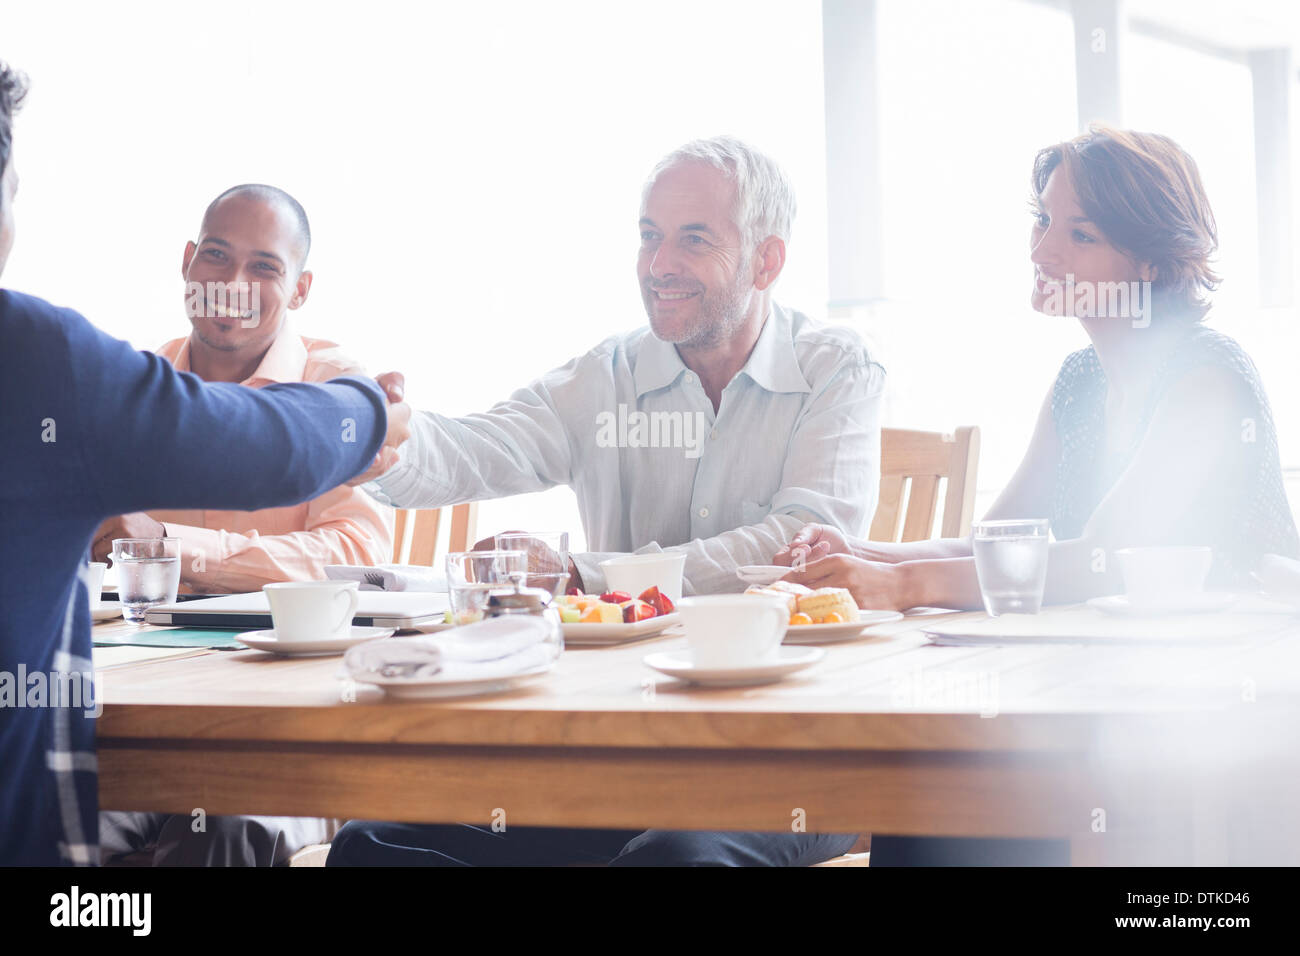 Business people shaking hands in meeting - Stock Image